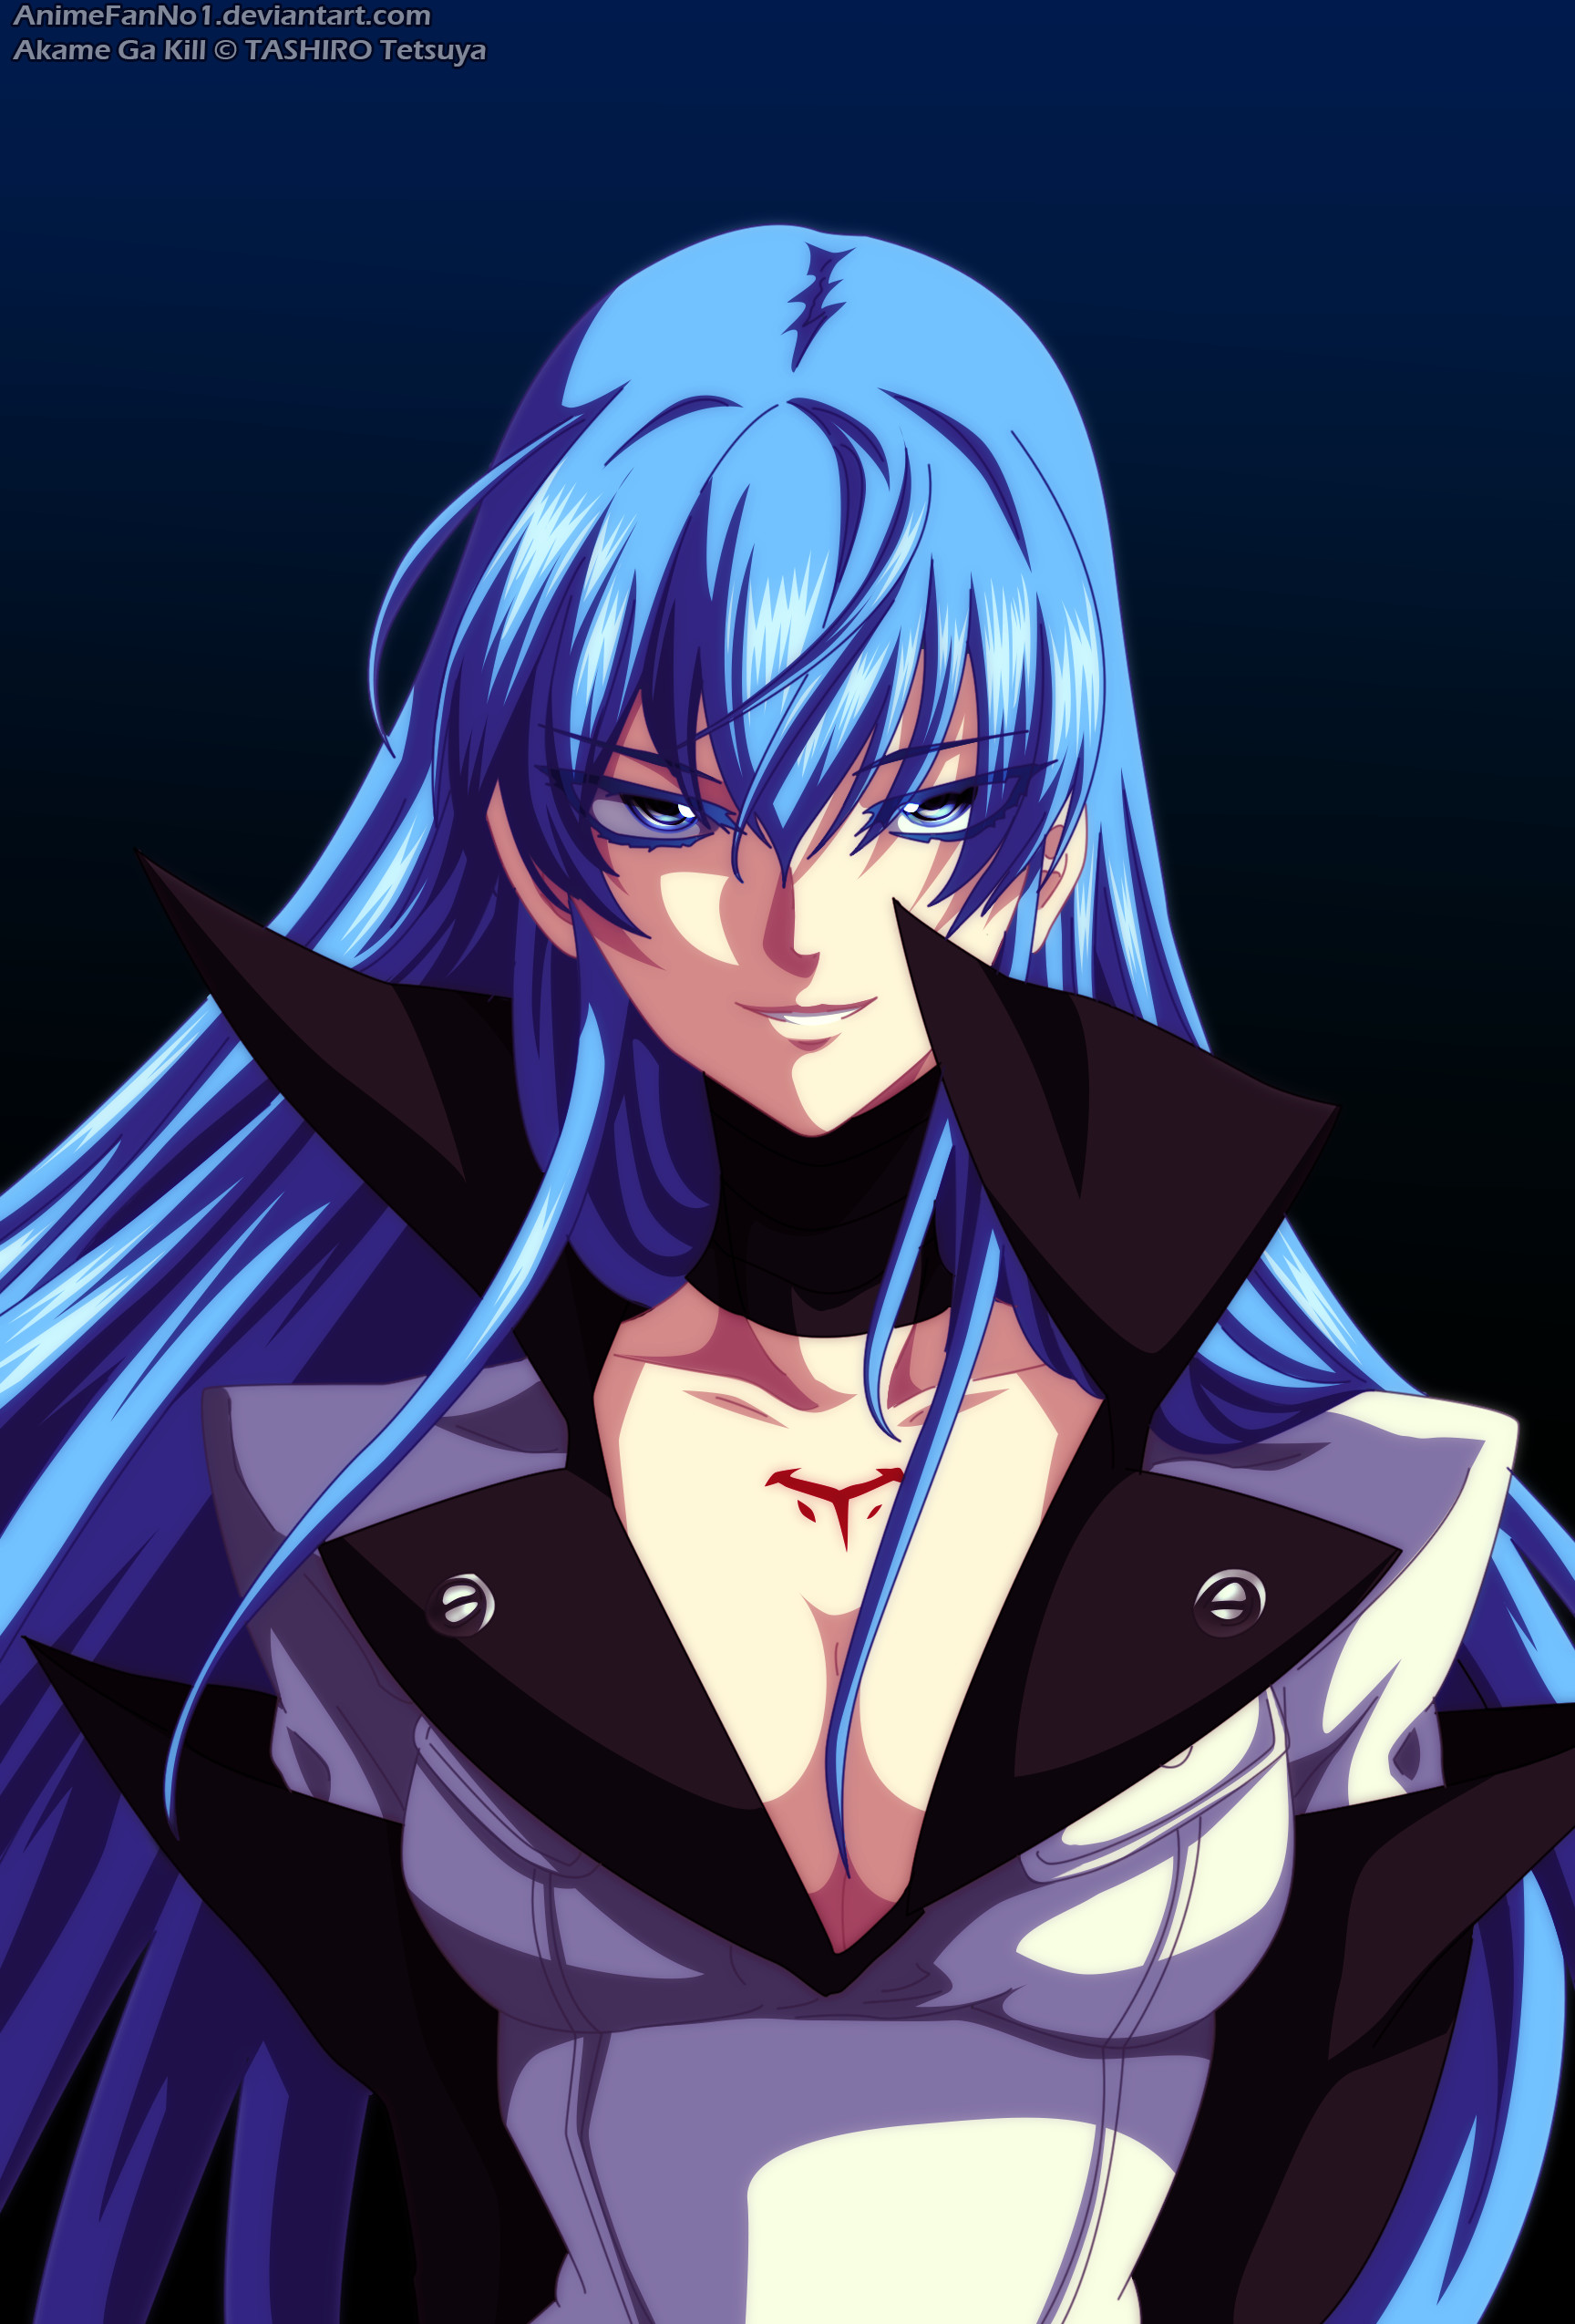 Esdeath - Akame Ga Kill Wallpaper Done By Me Rendered by